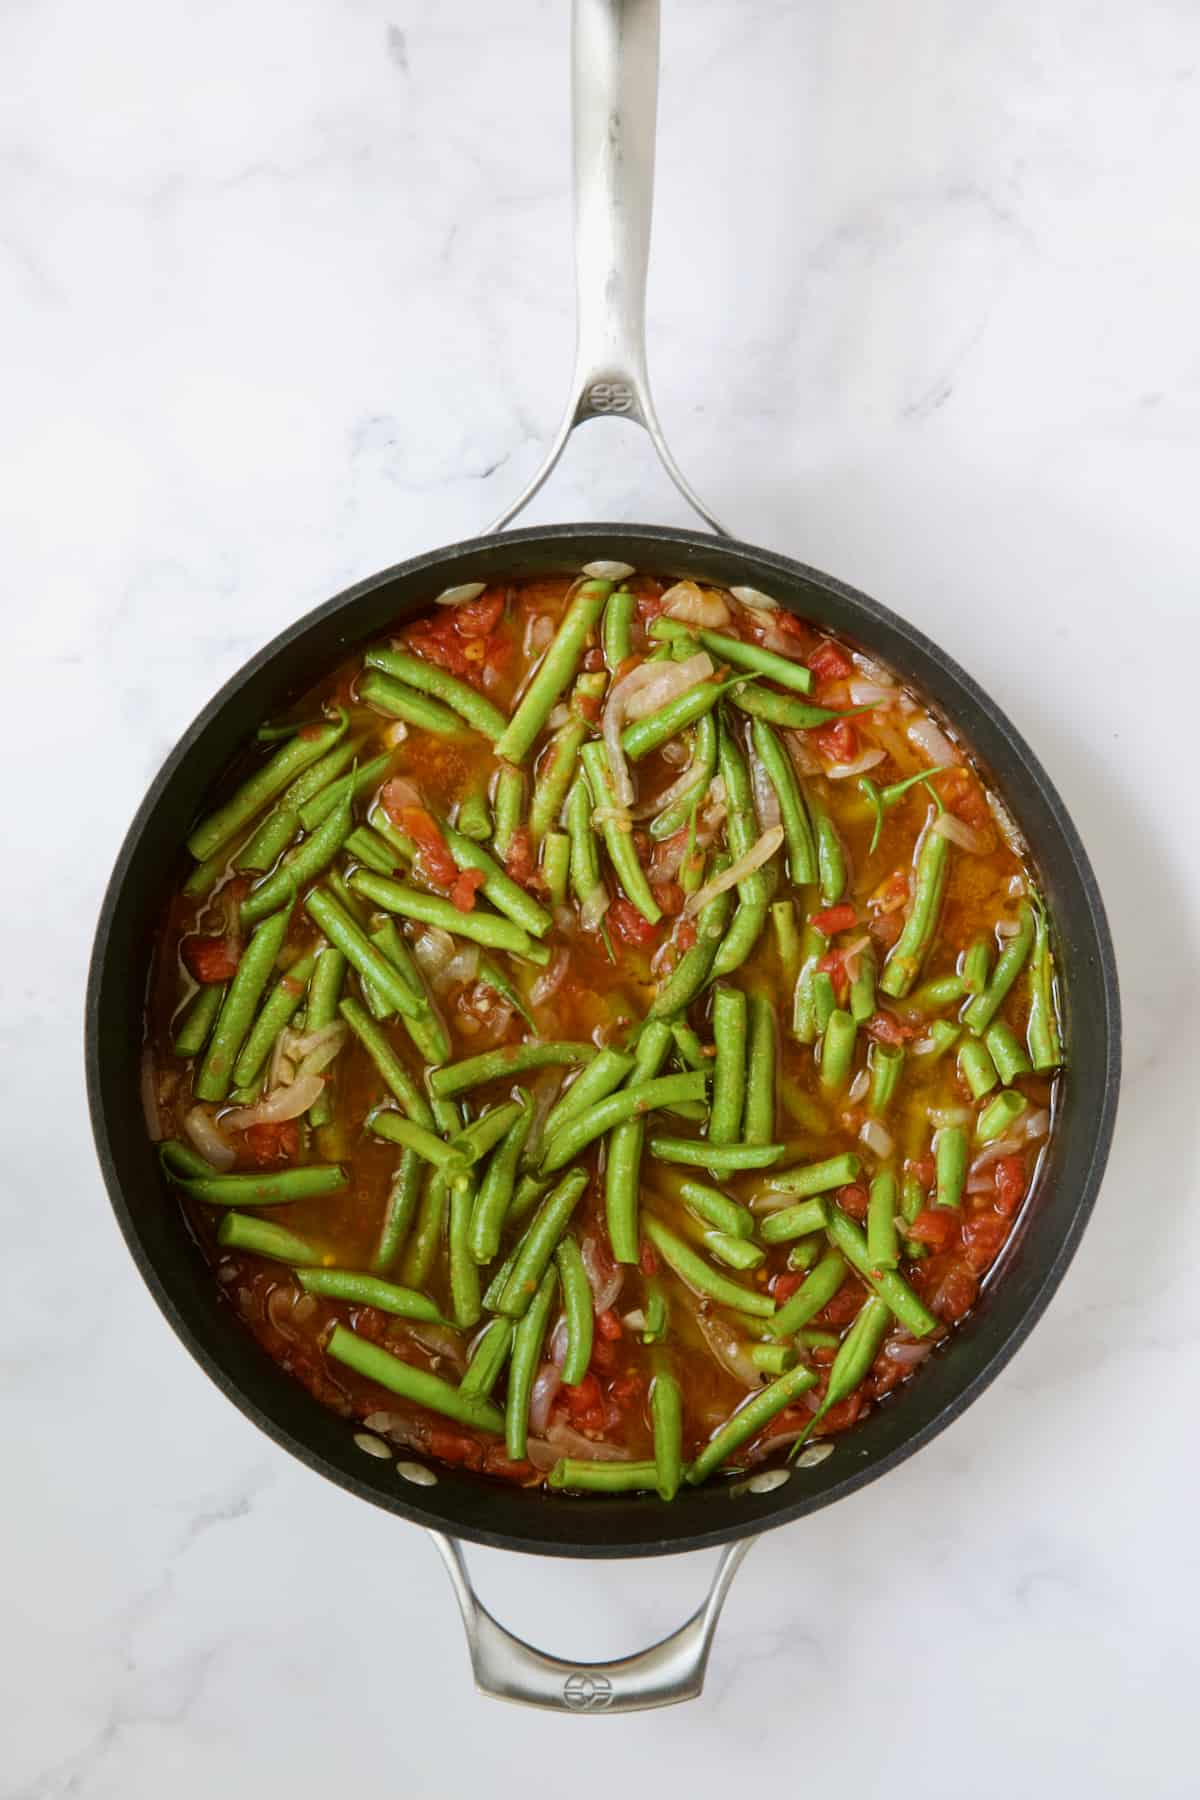 Green beans and tomatoes cooking in skillet right after fresh green beans are added.